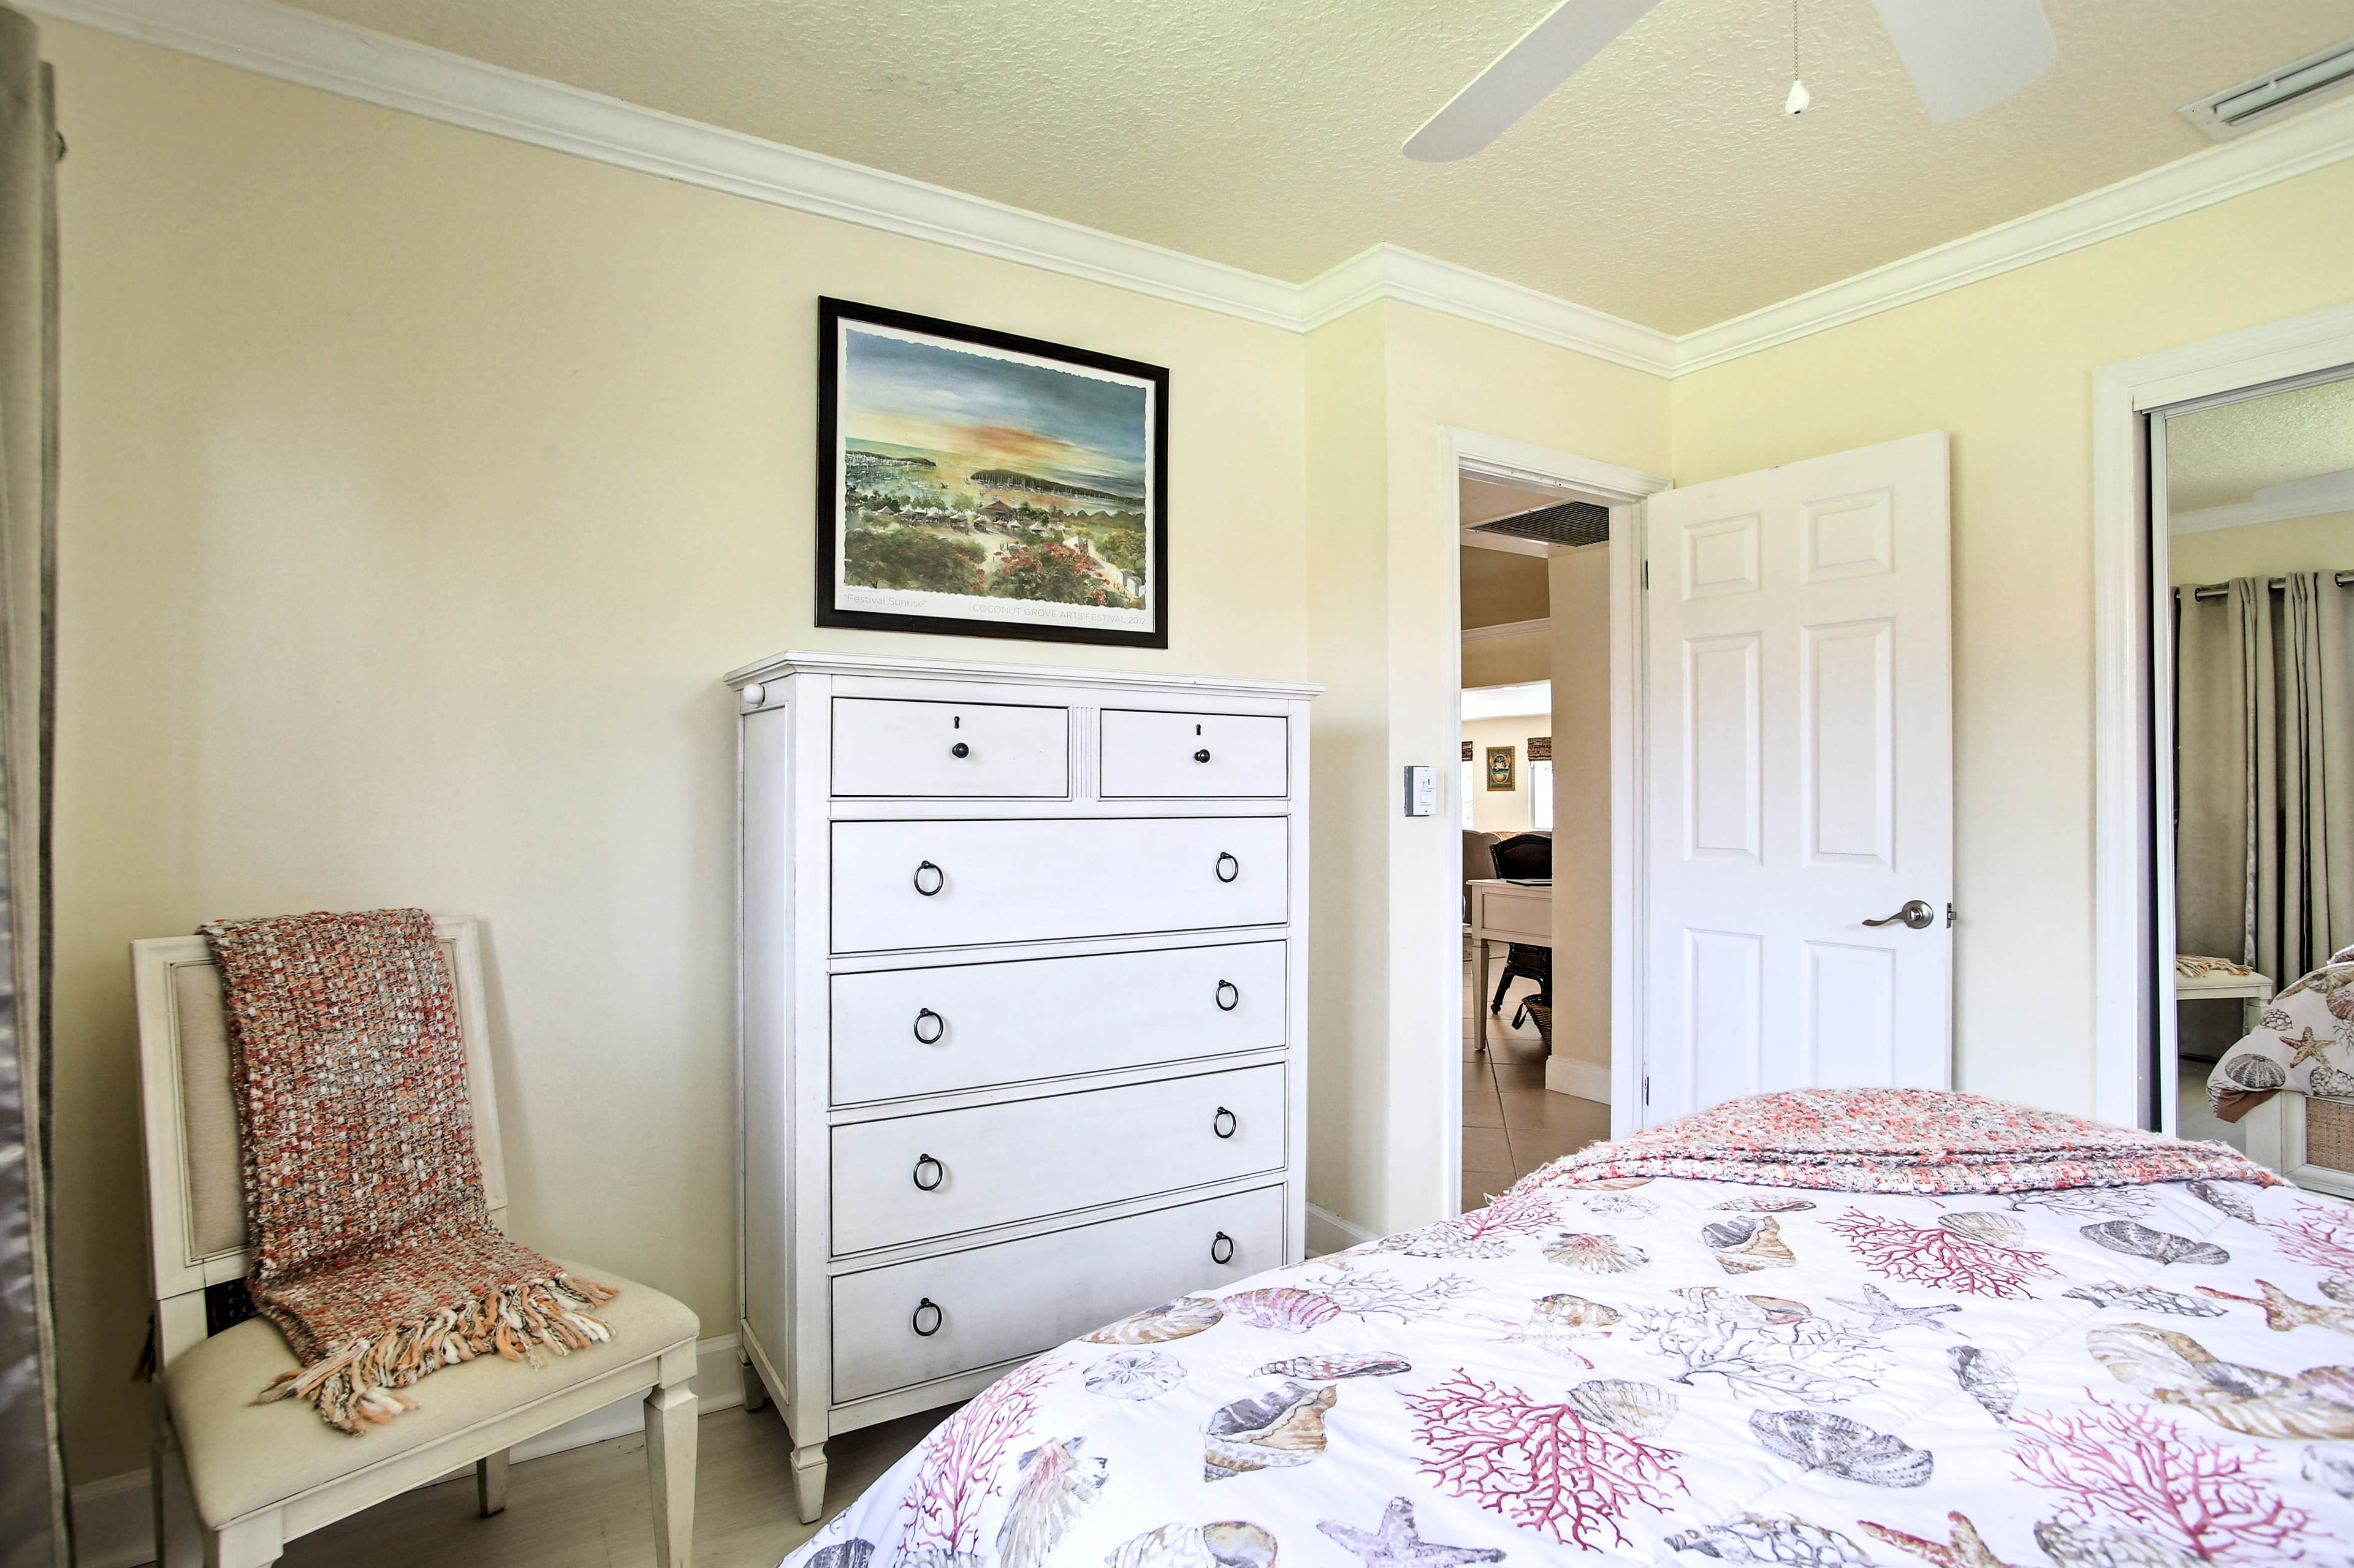 Keep your belongings organized in the dresser and closet.